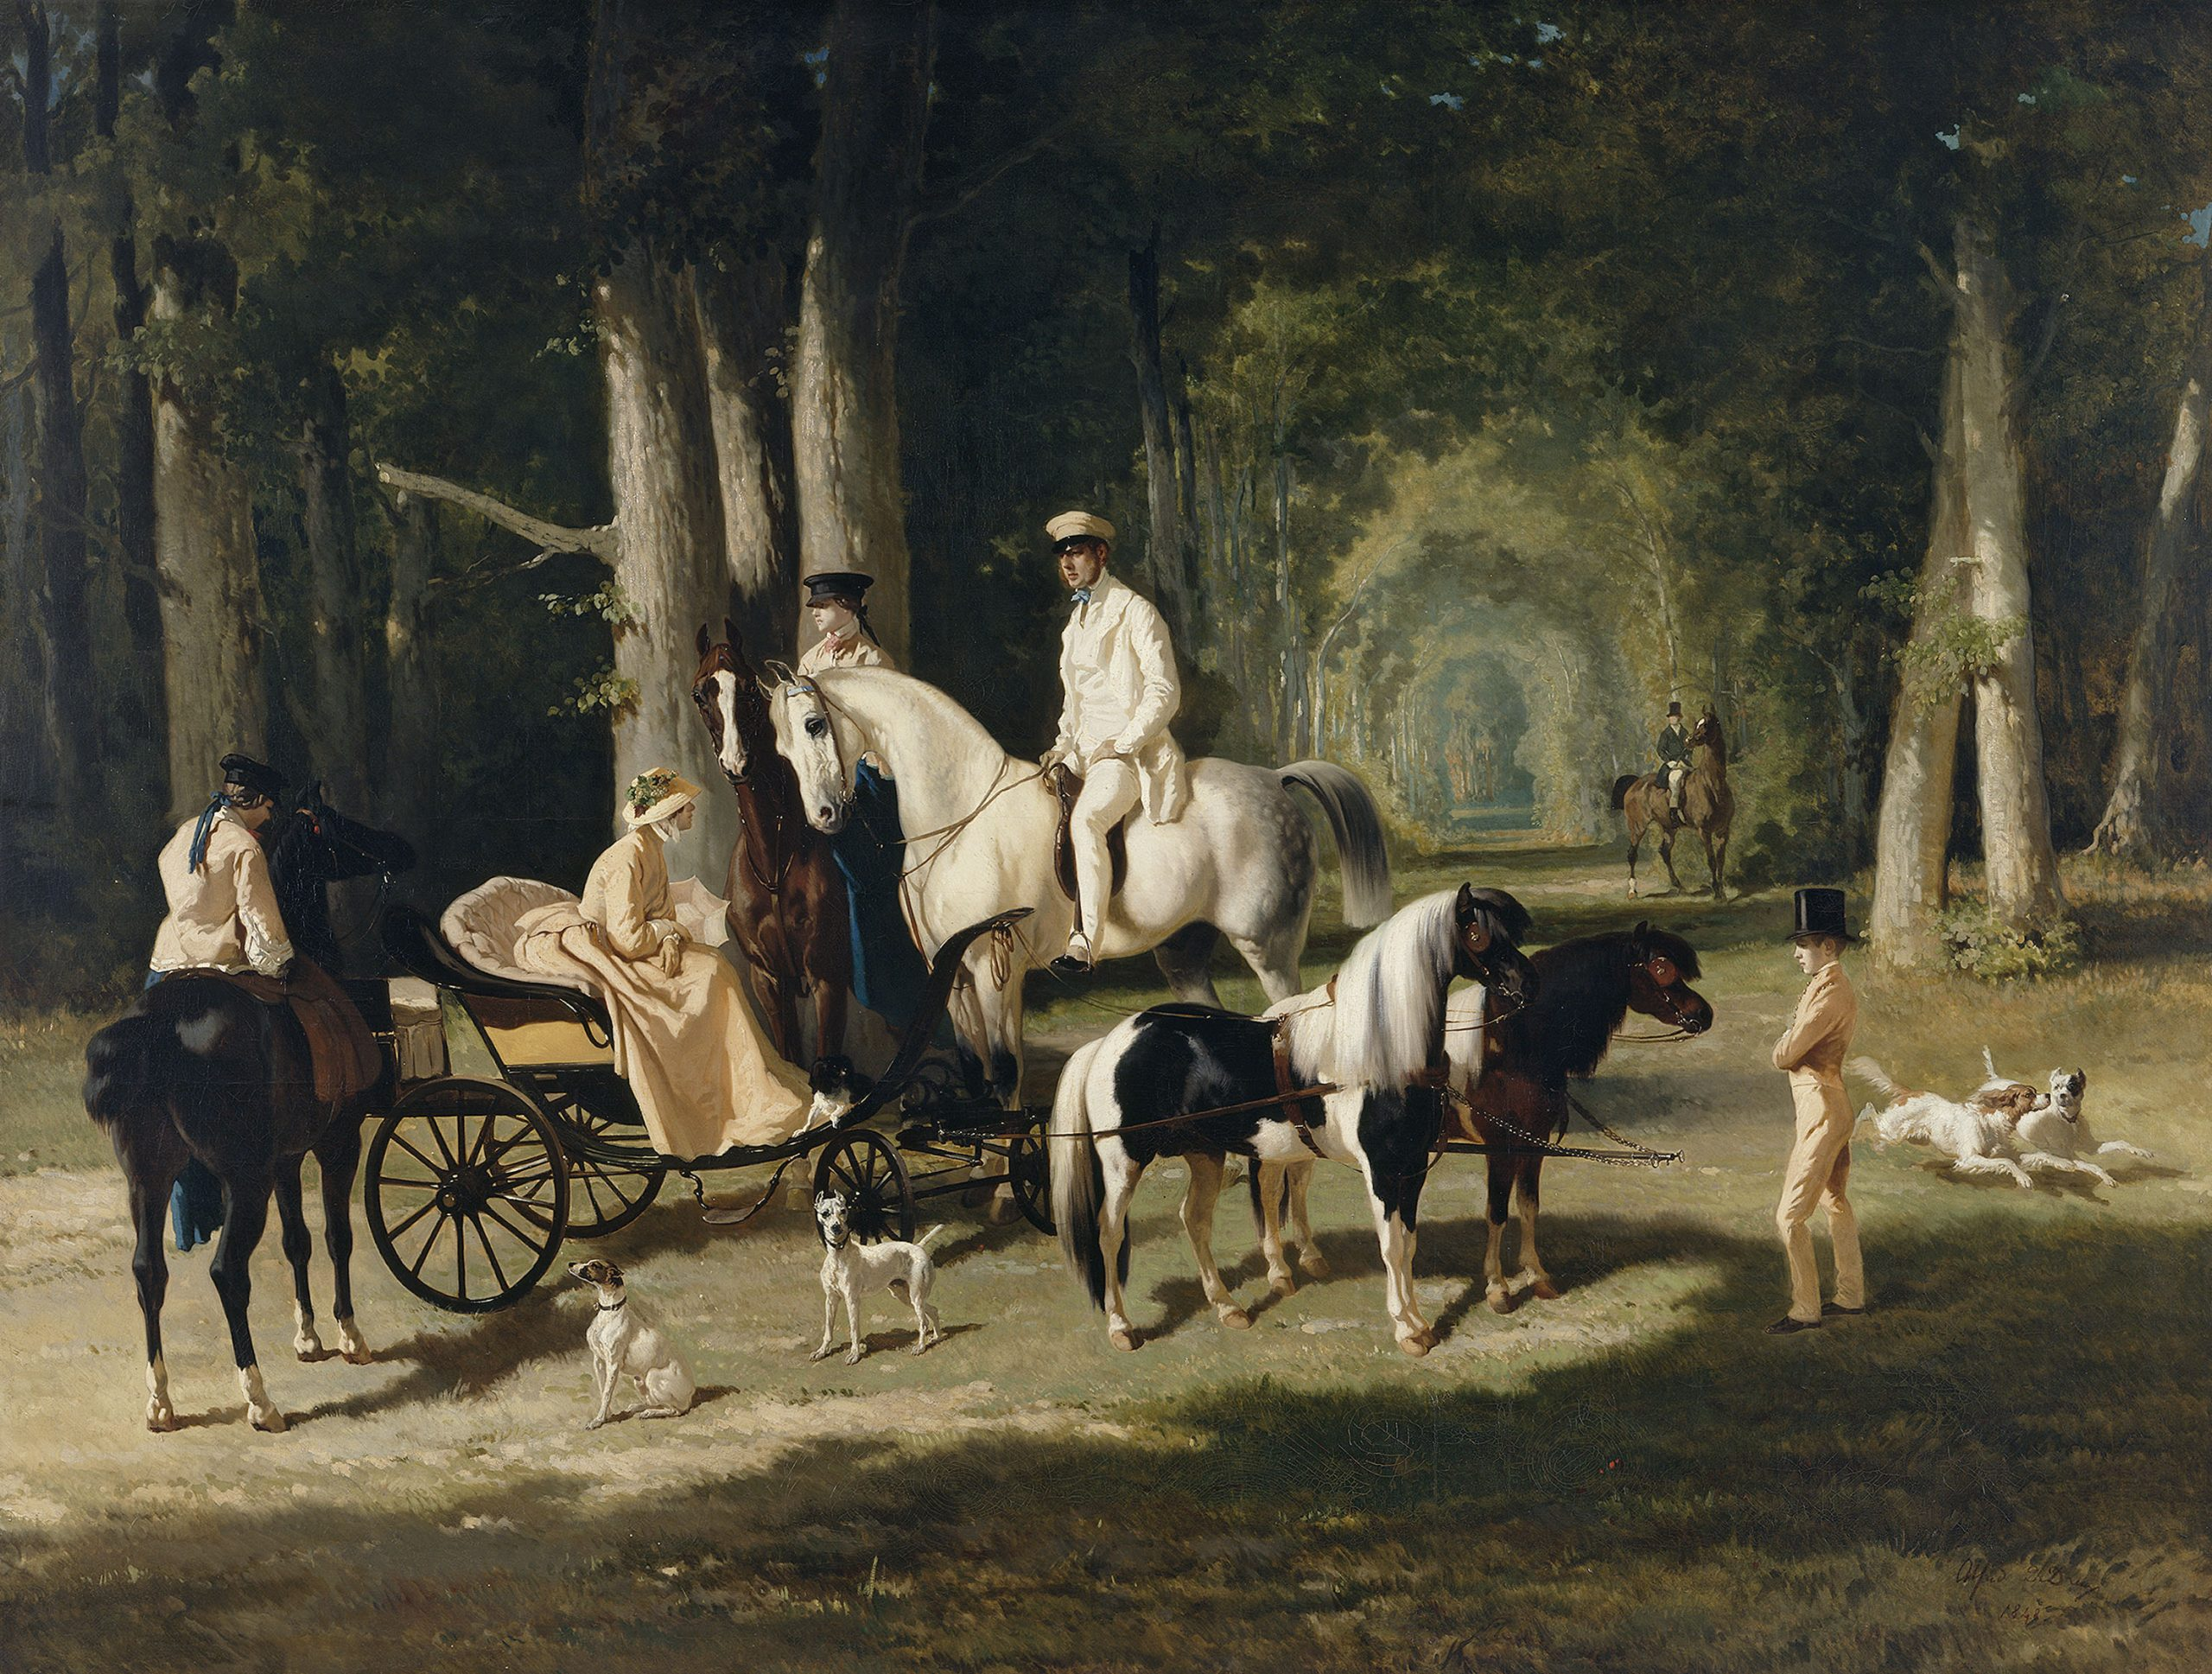 www.lacavalieremasquee.com | Horse in painting